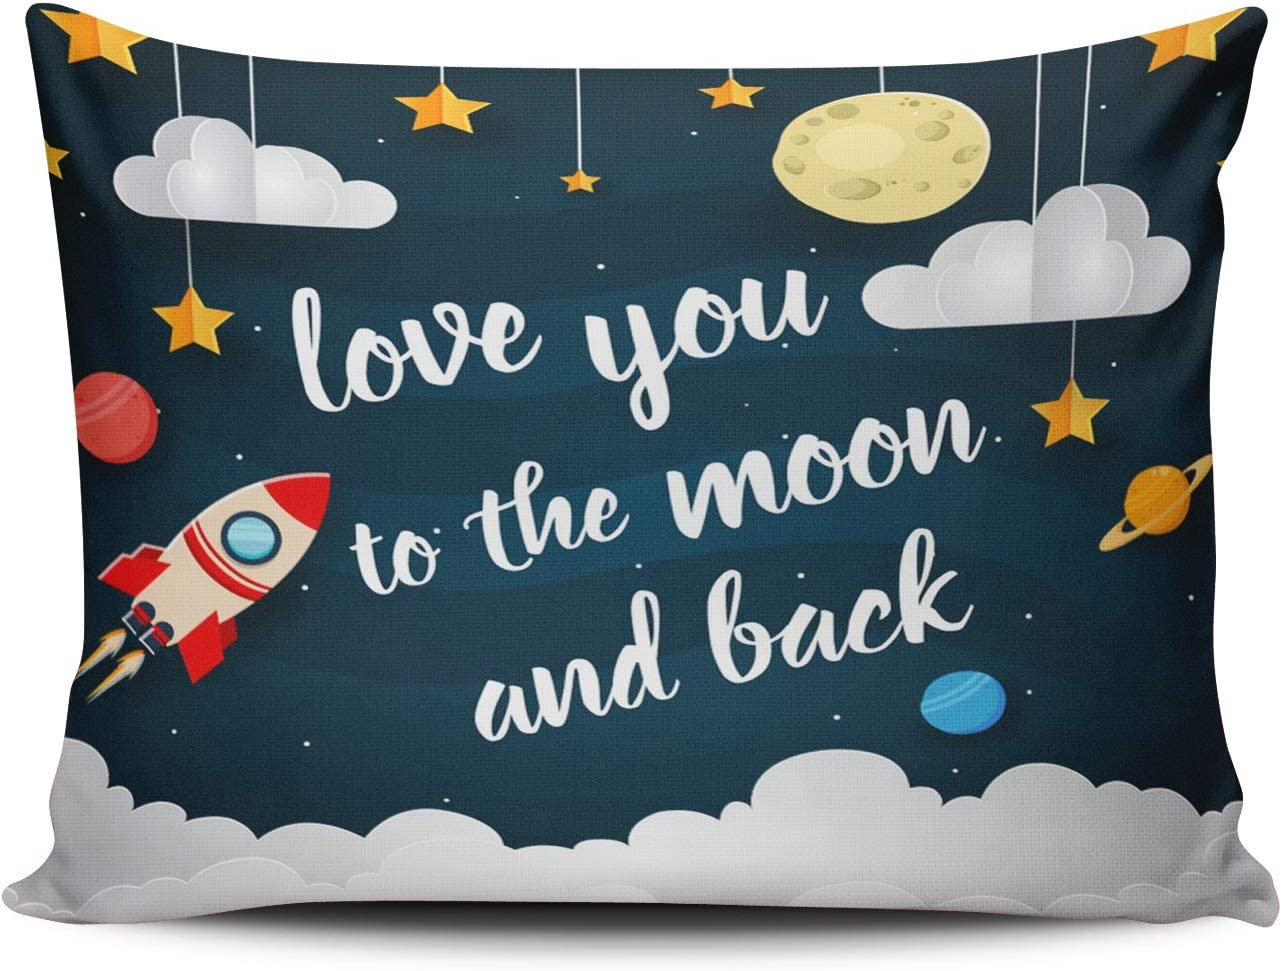 WEINIYA Bedroom Custom Decor Import Free shipping on posting reviews Love You The Color Moon Back to and